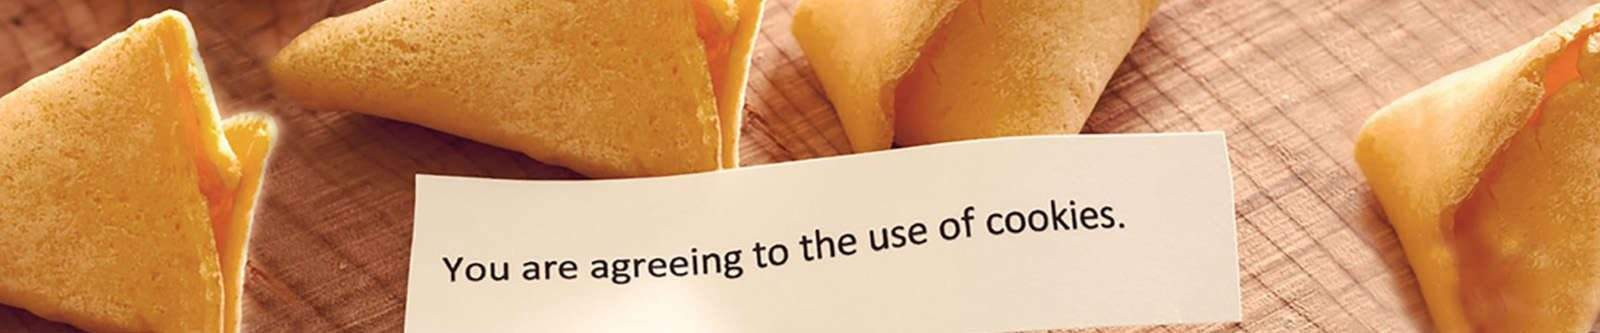 Fortune cookies with you are agreeing to the use of cookies notice